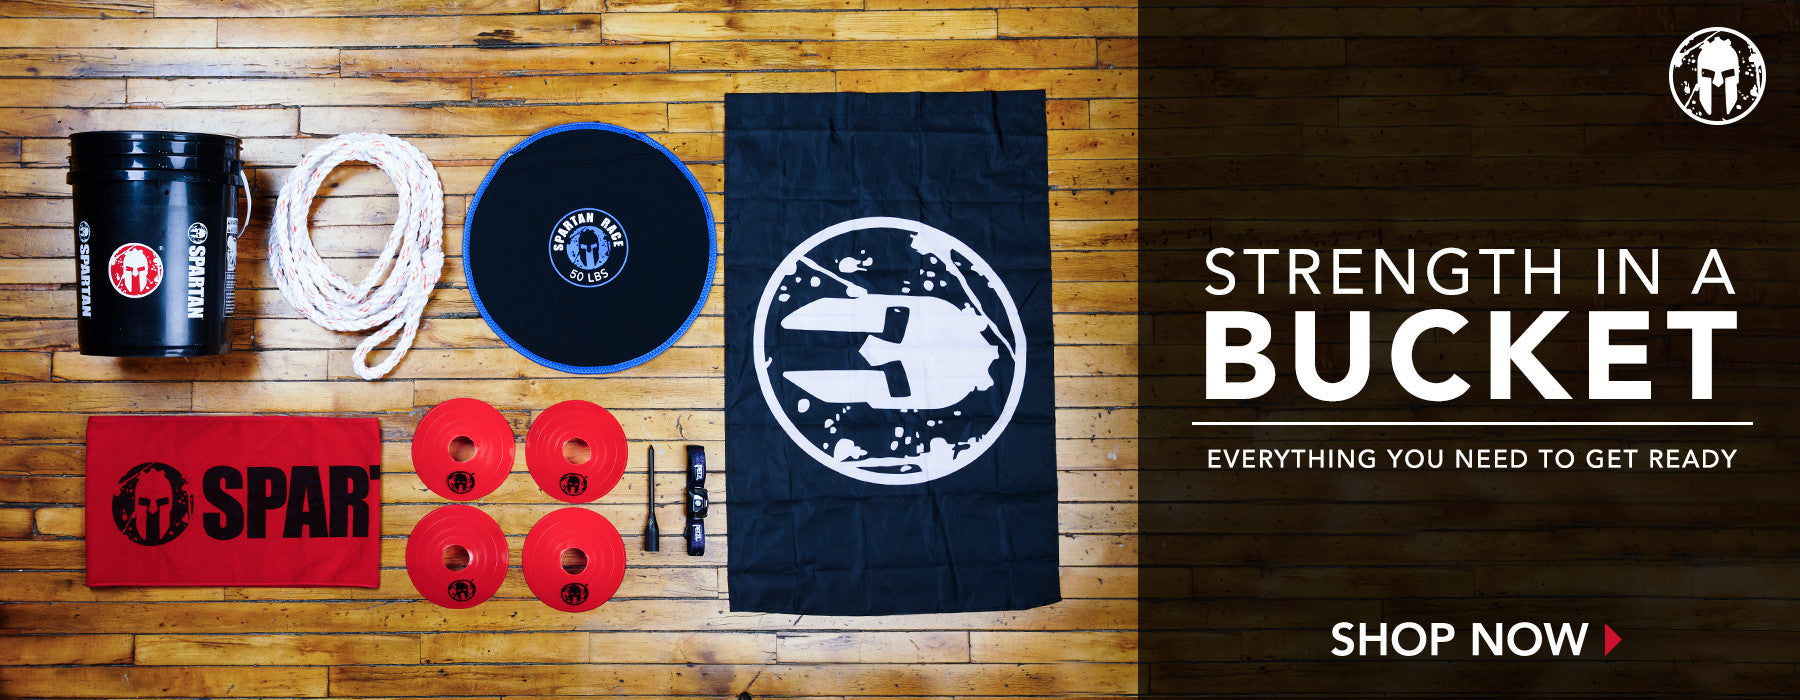 Spartan Race Black Friday Deals Don't miss out on Black Friday discounts, sales, promo codes, coupons, and more from Spartan Race! Check here for any early-bird specials and the official Spartan Race sale. Don't forget to check for any Black Friday free shipping offers!5/5(20).